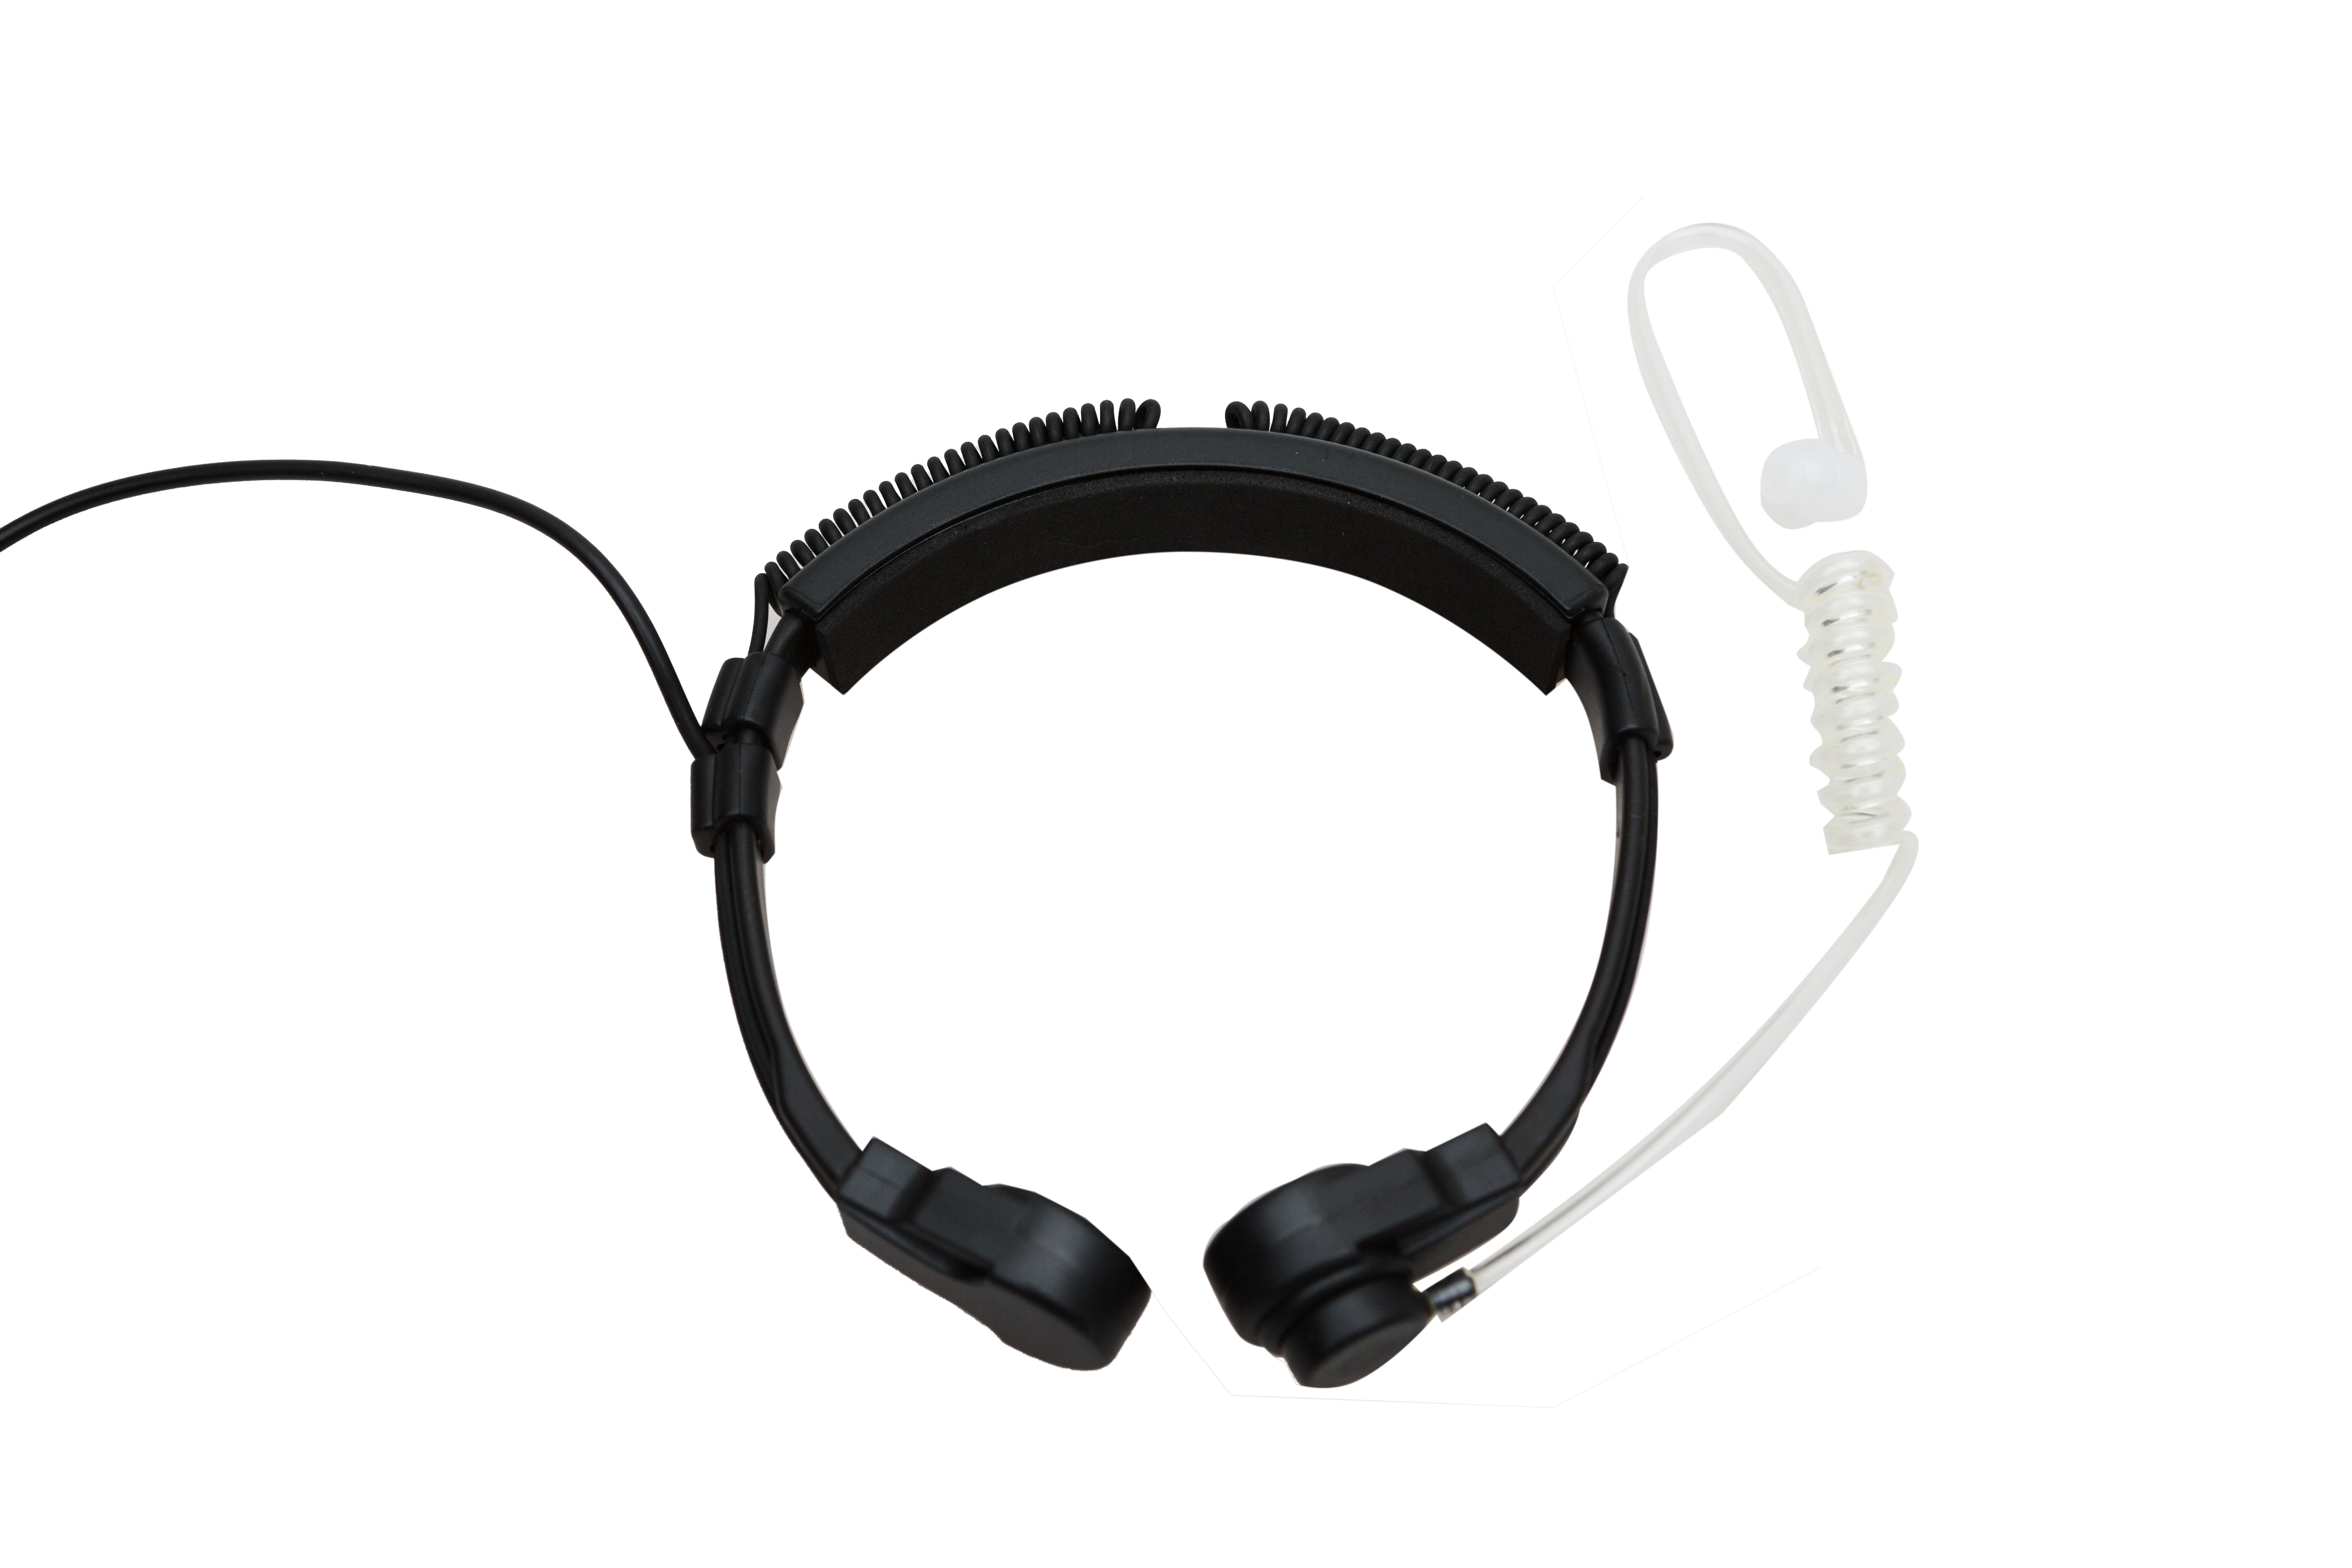 /axitour-axiwi-he-008-throat-microphone